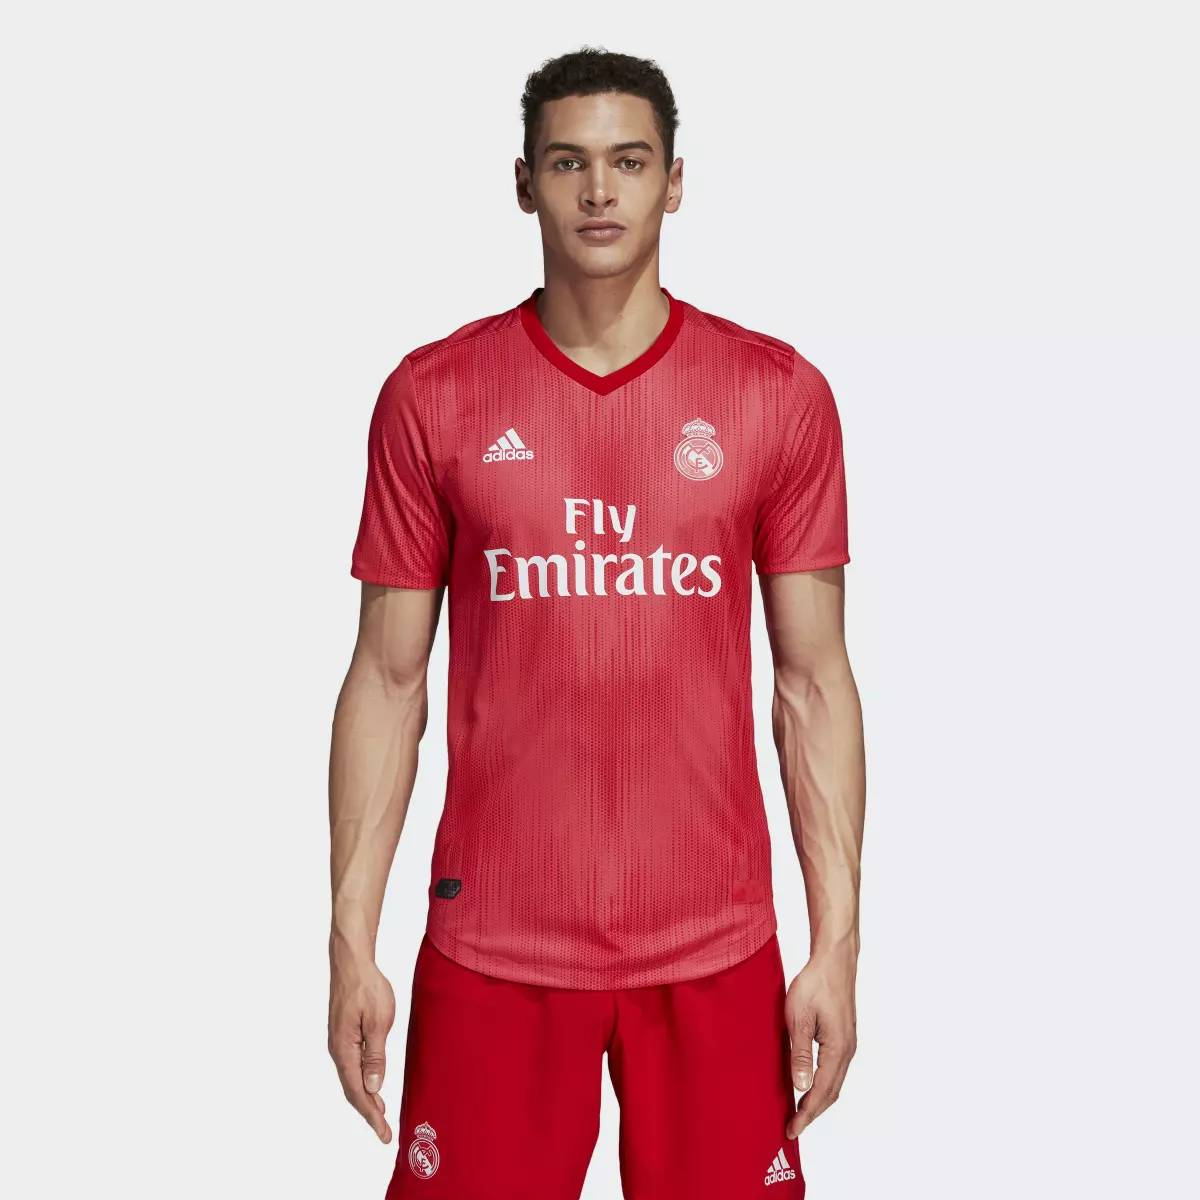 timeless design c6a62 c642f Real Madrid 2018-19 Adidas Third Kit | 18/19 Kits | Football ...